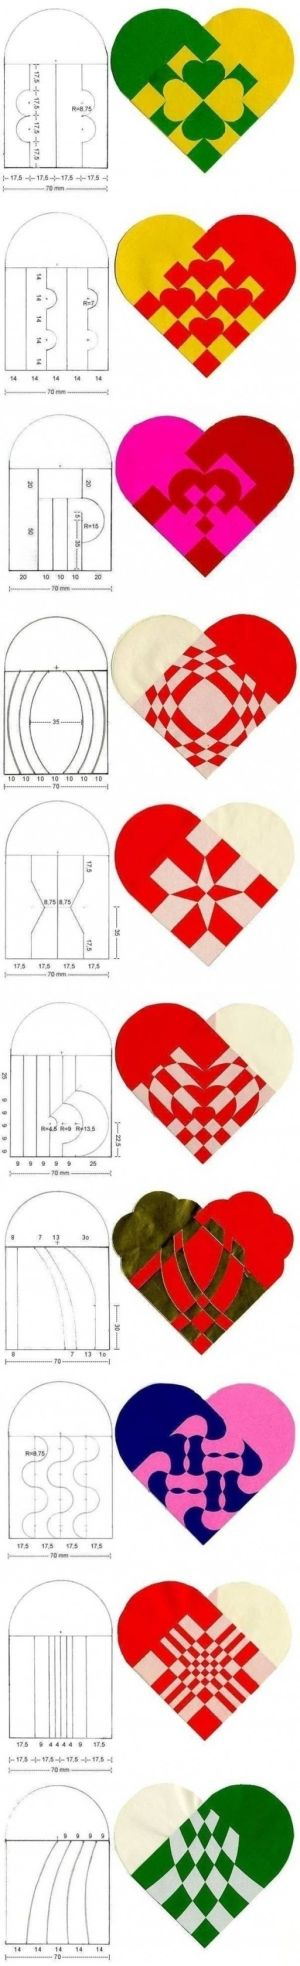 How to make beautiful simple Heart Pattern designs step by step DIY tutorial instructions, How to, how to do, diy instructions, crafts, do i by TinyCarmen